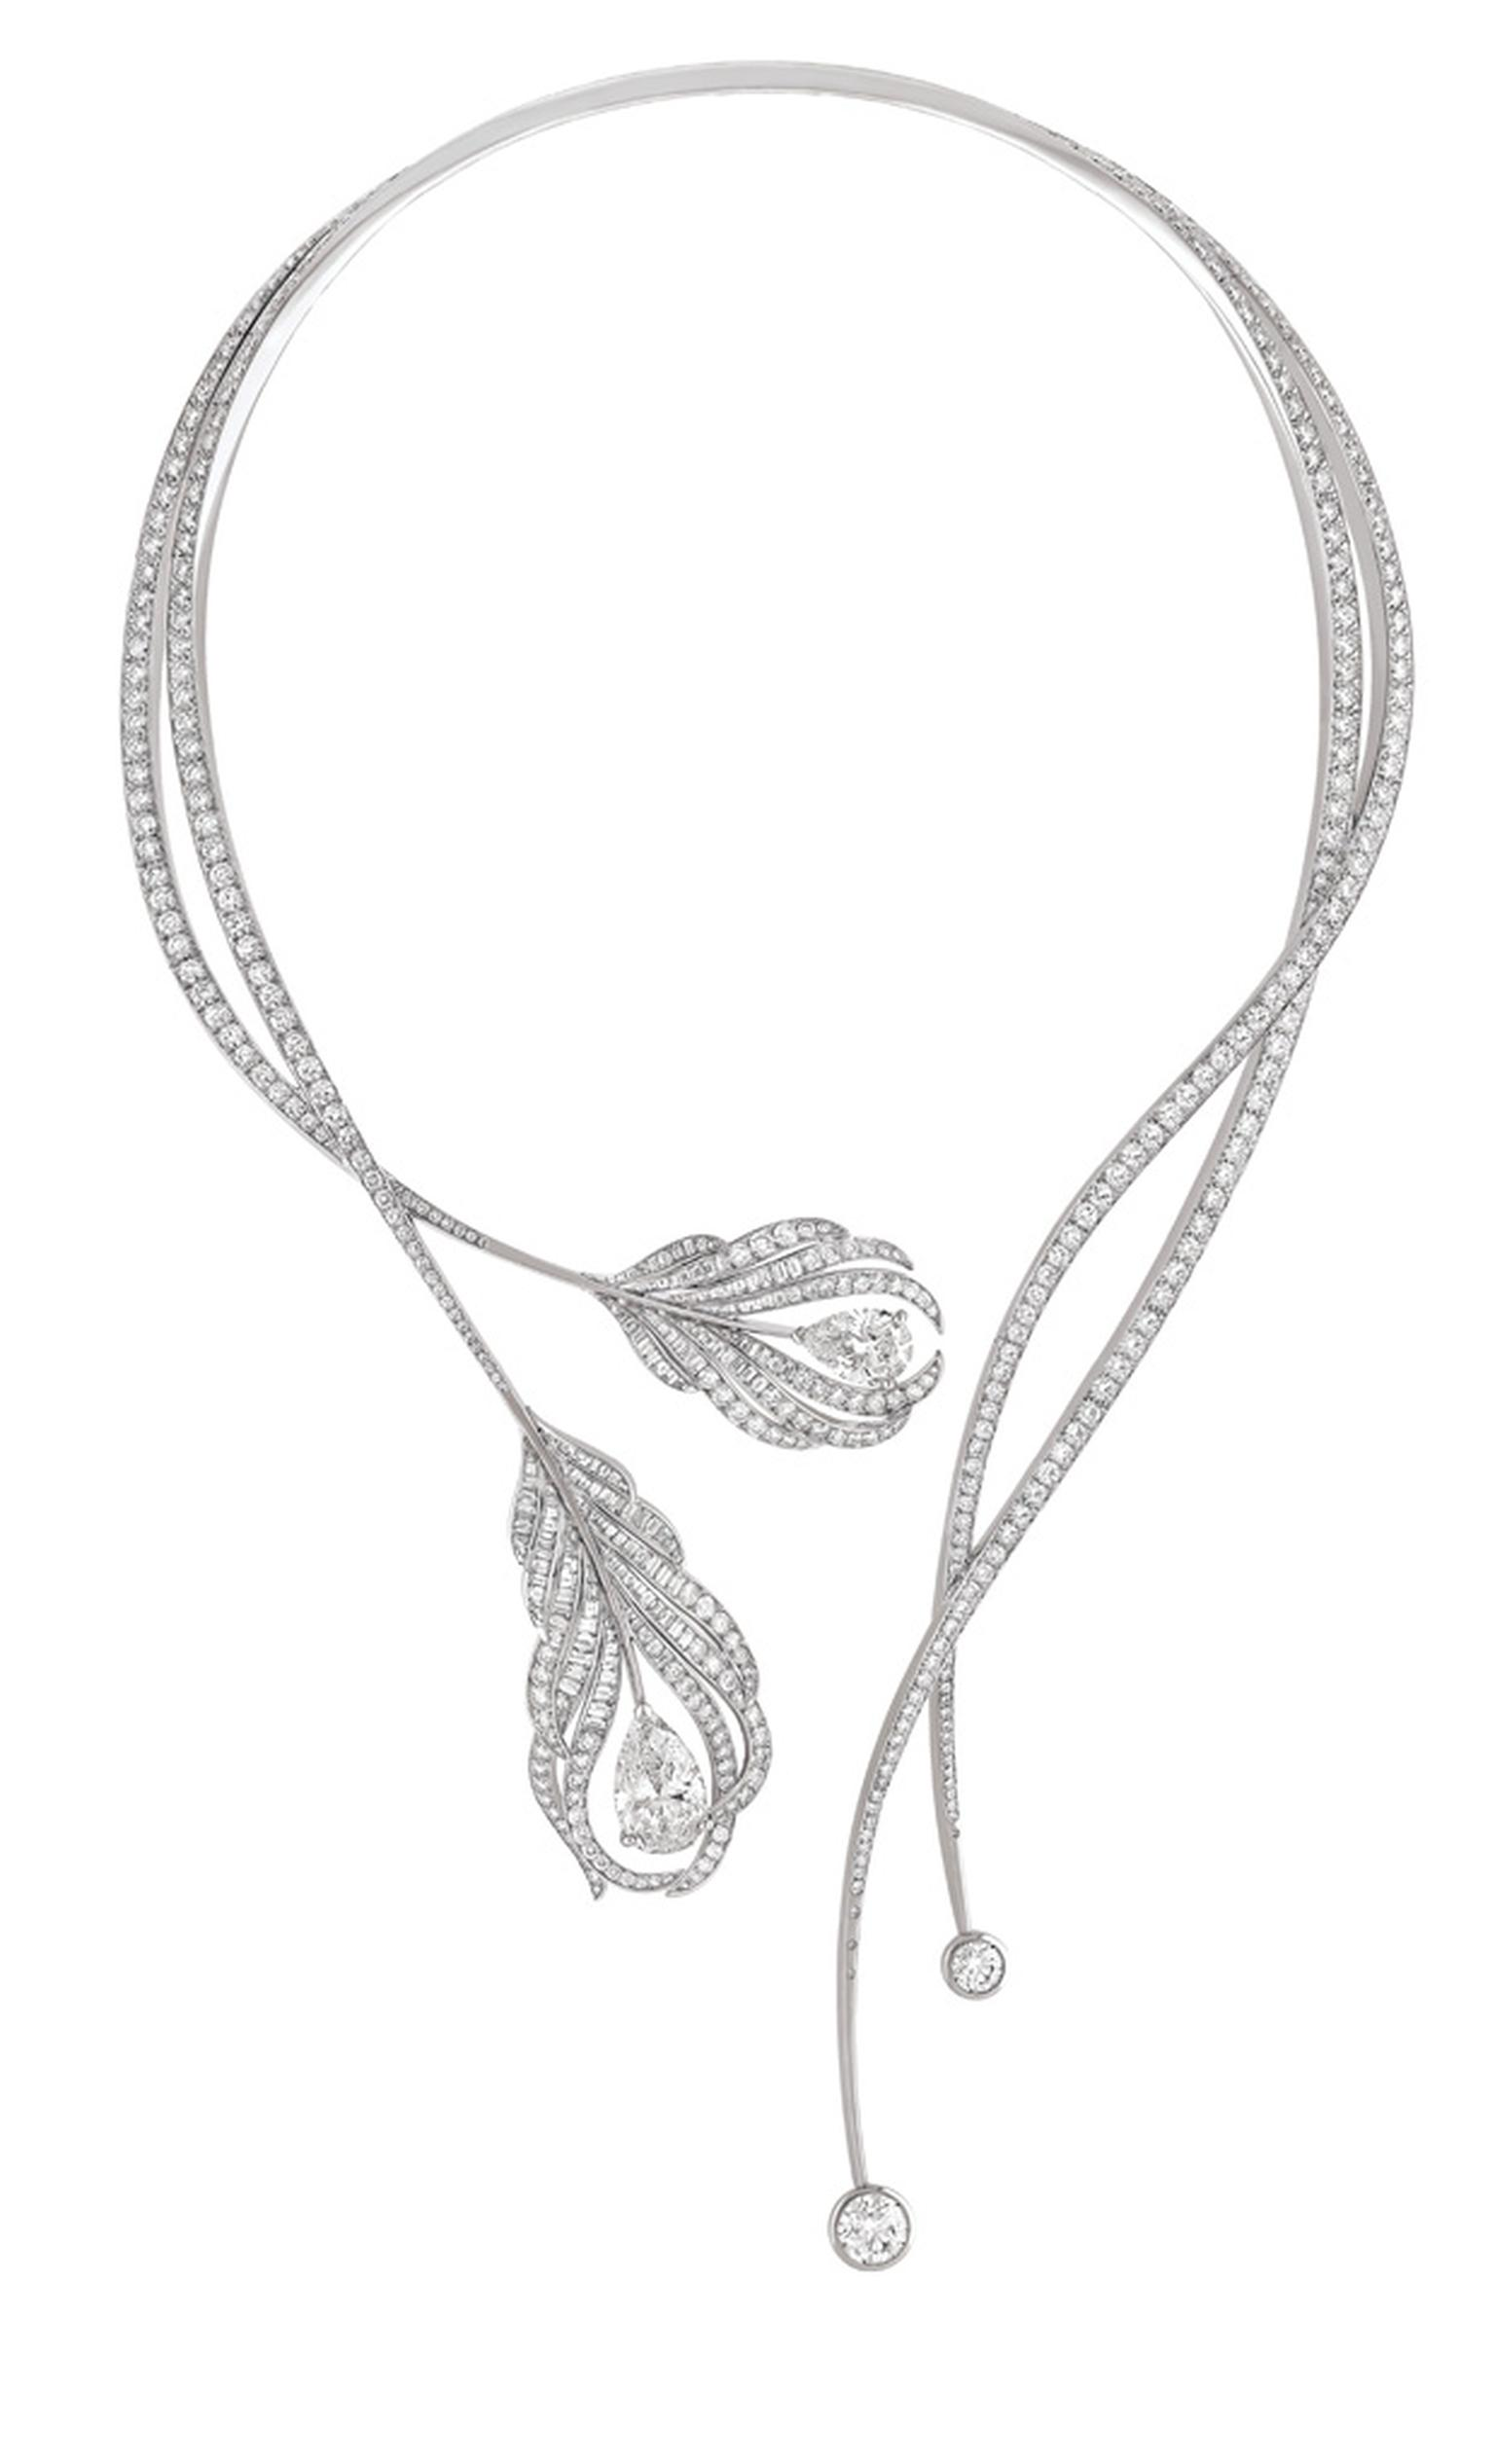 Chanel's new Plume Necklace in diamonds and white gold inspired by the 1932 exhibition